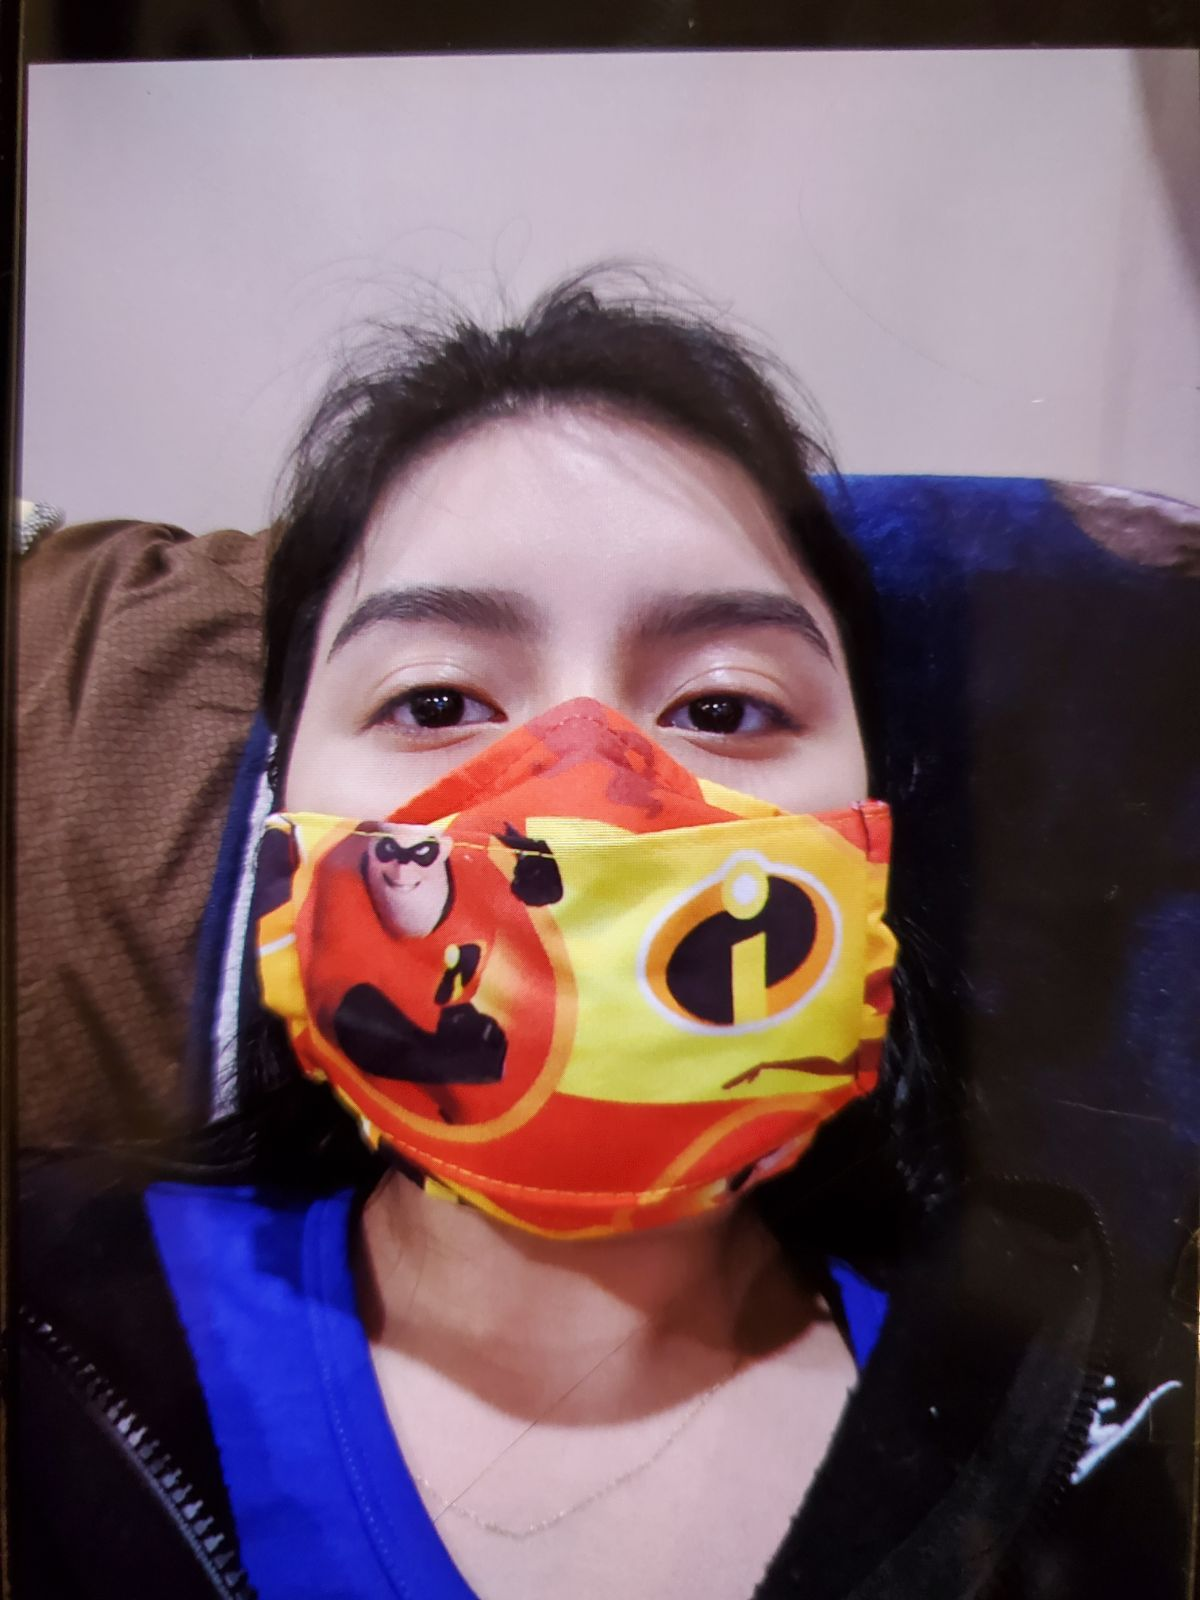 FACE MASK 3 for $12 KIDS SIZE